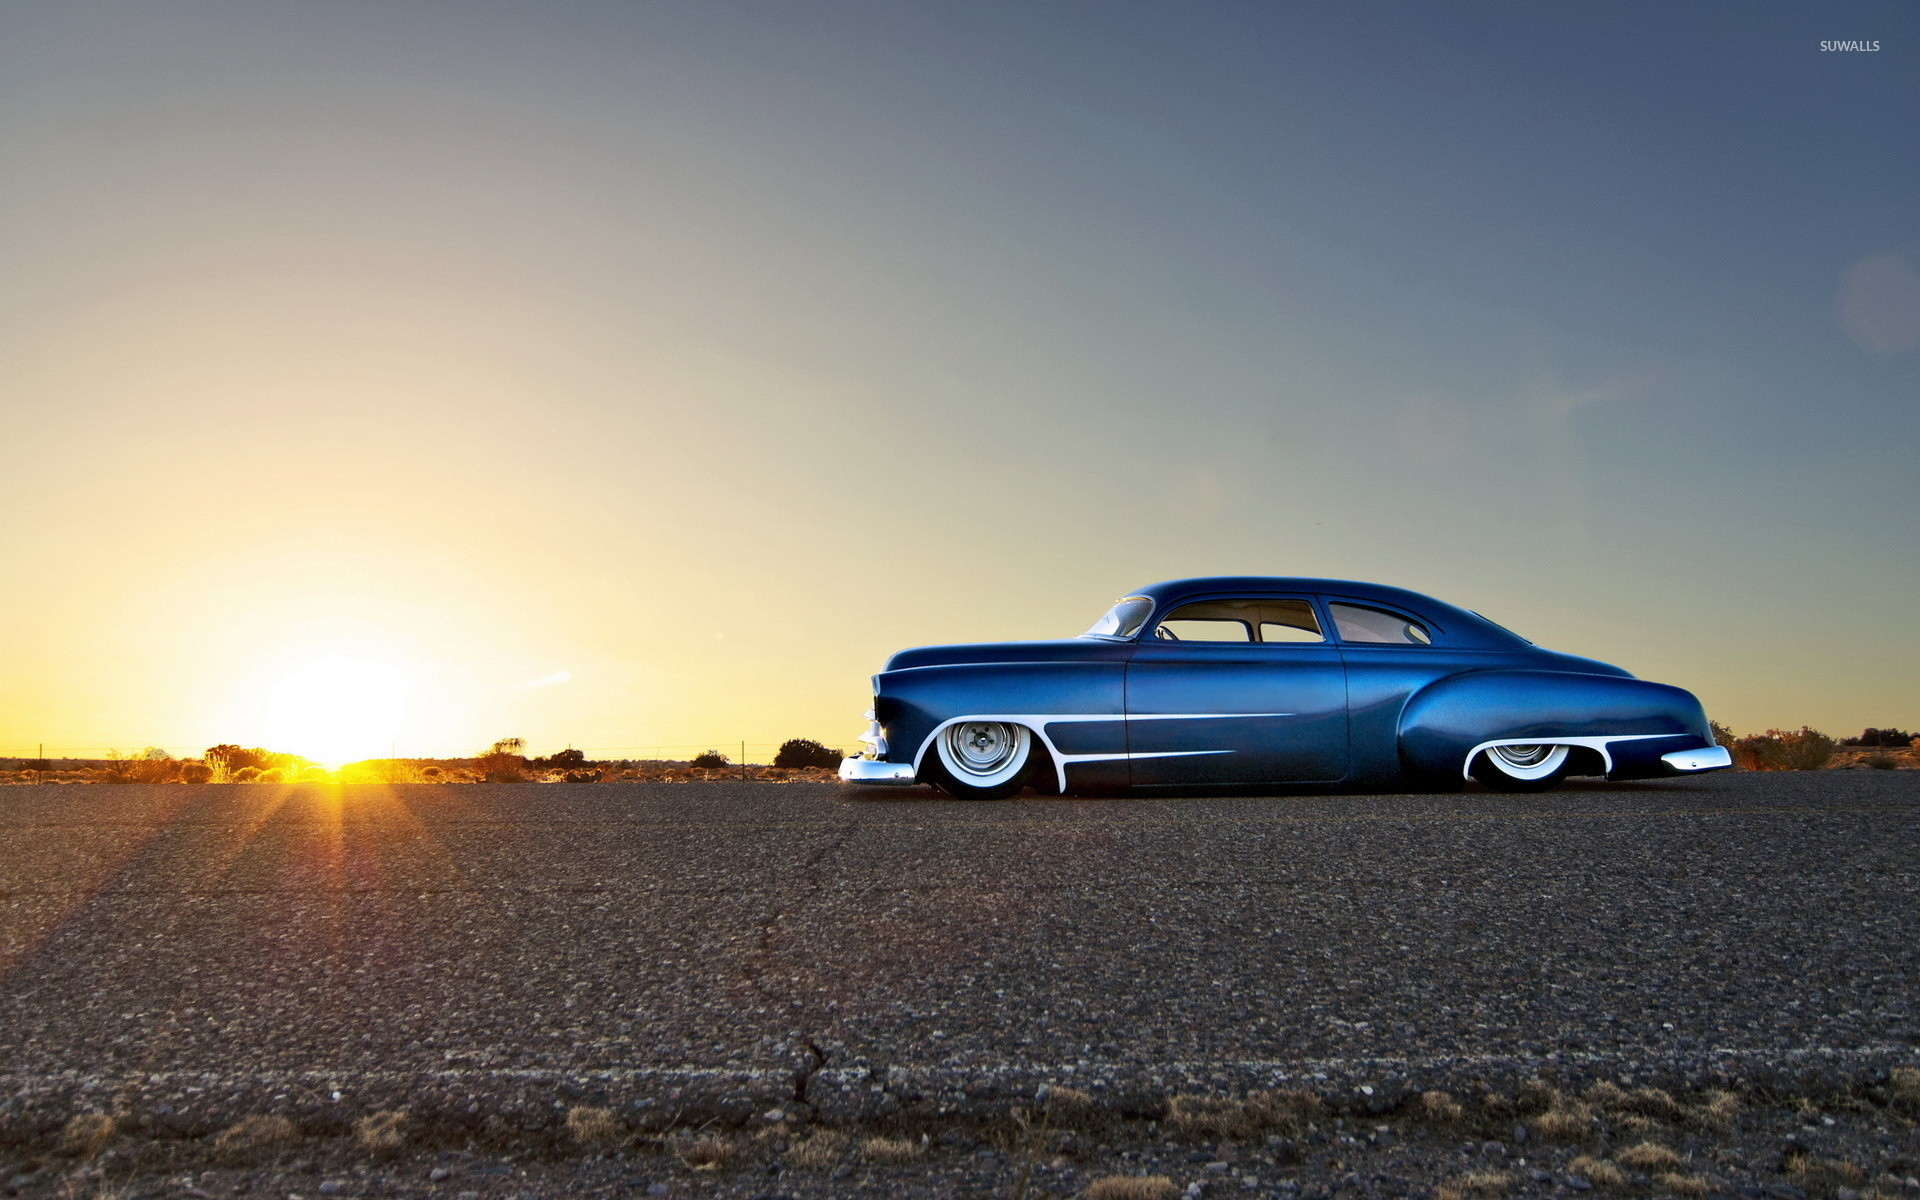 Res: 1920x1200, Blue sparkly Chevrolet lowrider side view wallpaper